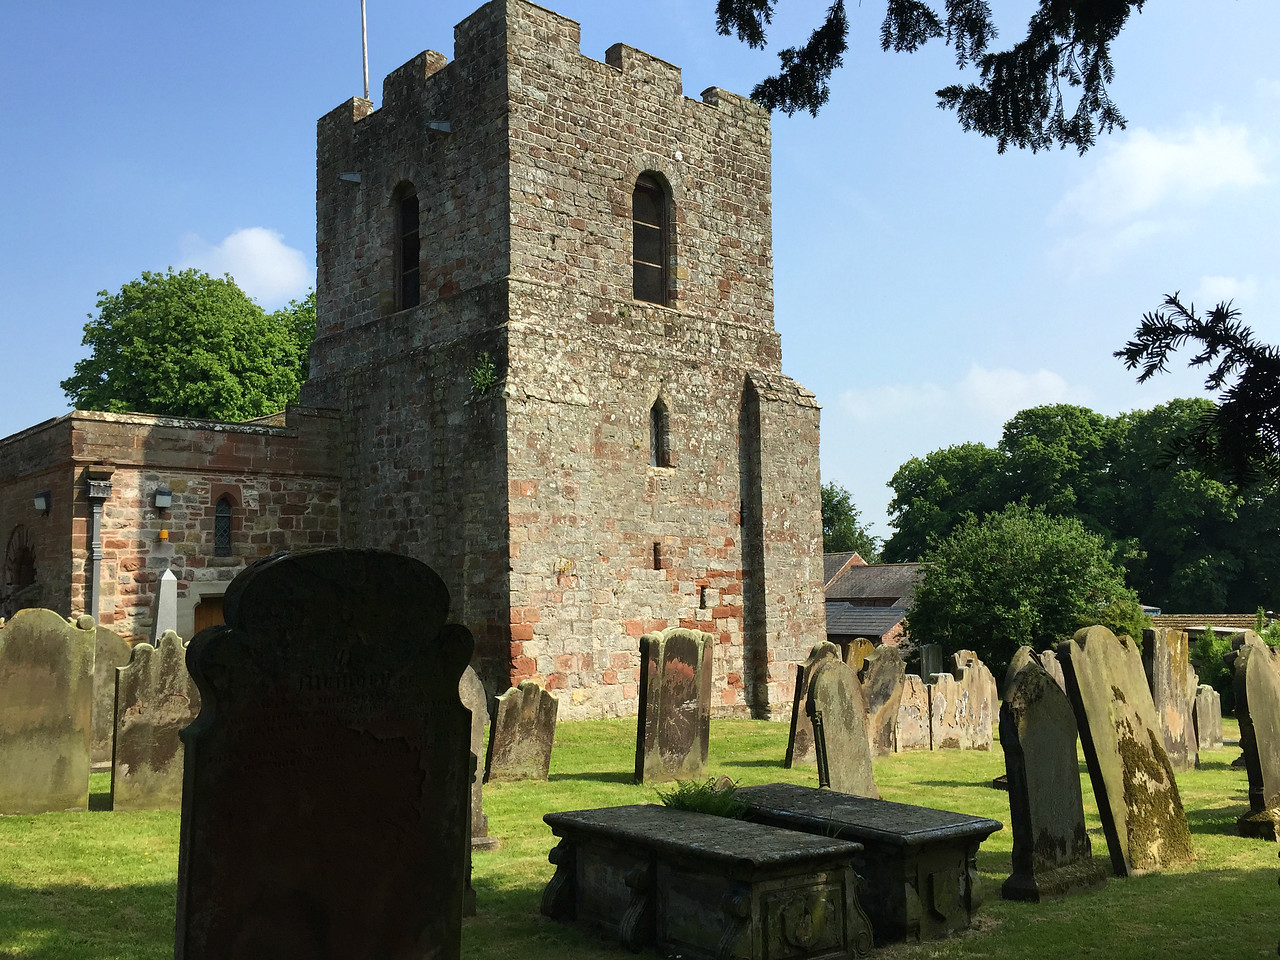 St Michael's Church, Burgh-by-Sands: This 12th century church was built on the foundation of a Roman Fort, with stones from the wall. In 1307 Edward I was brought here to lie in state after being killed during the uprising of Robert the Bruce.